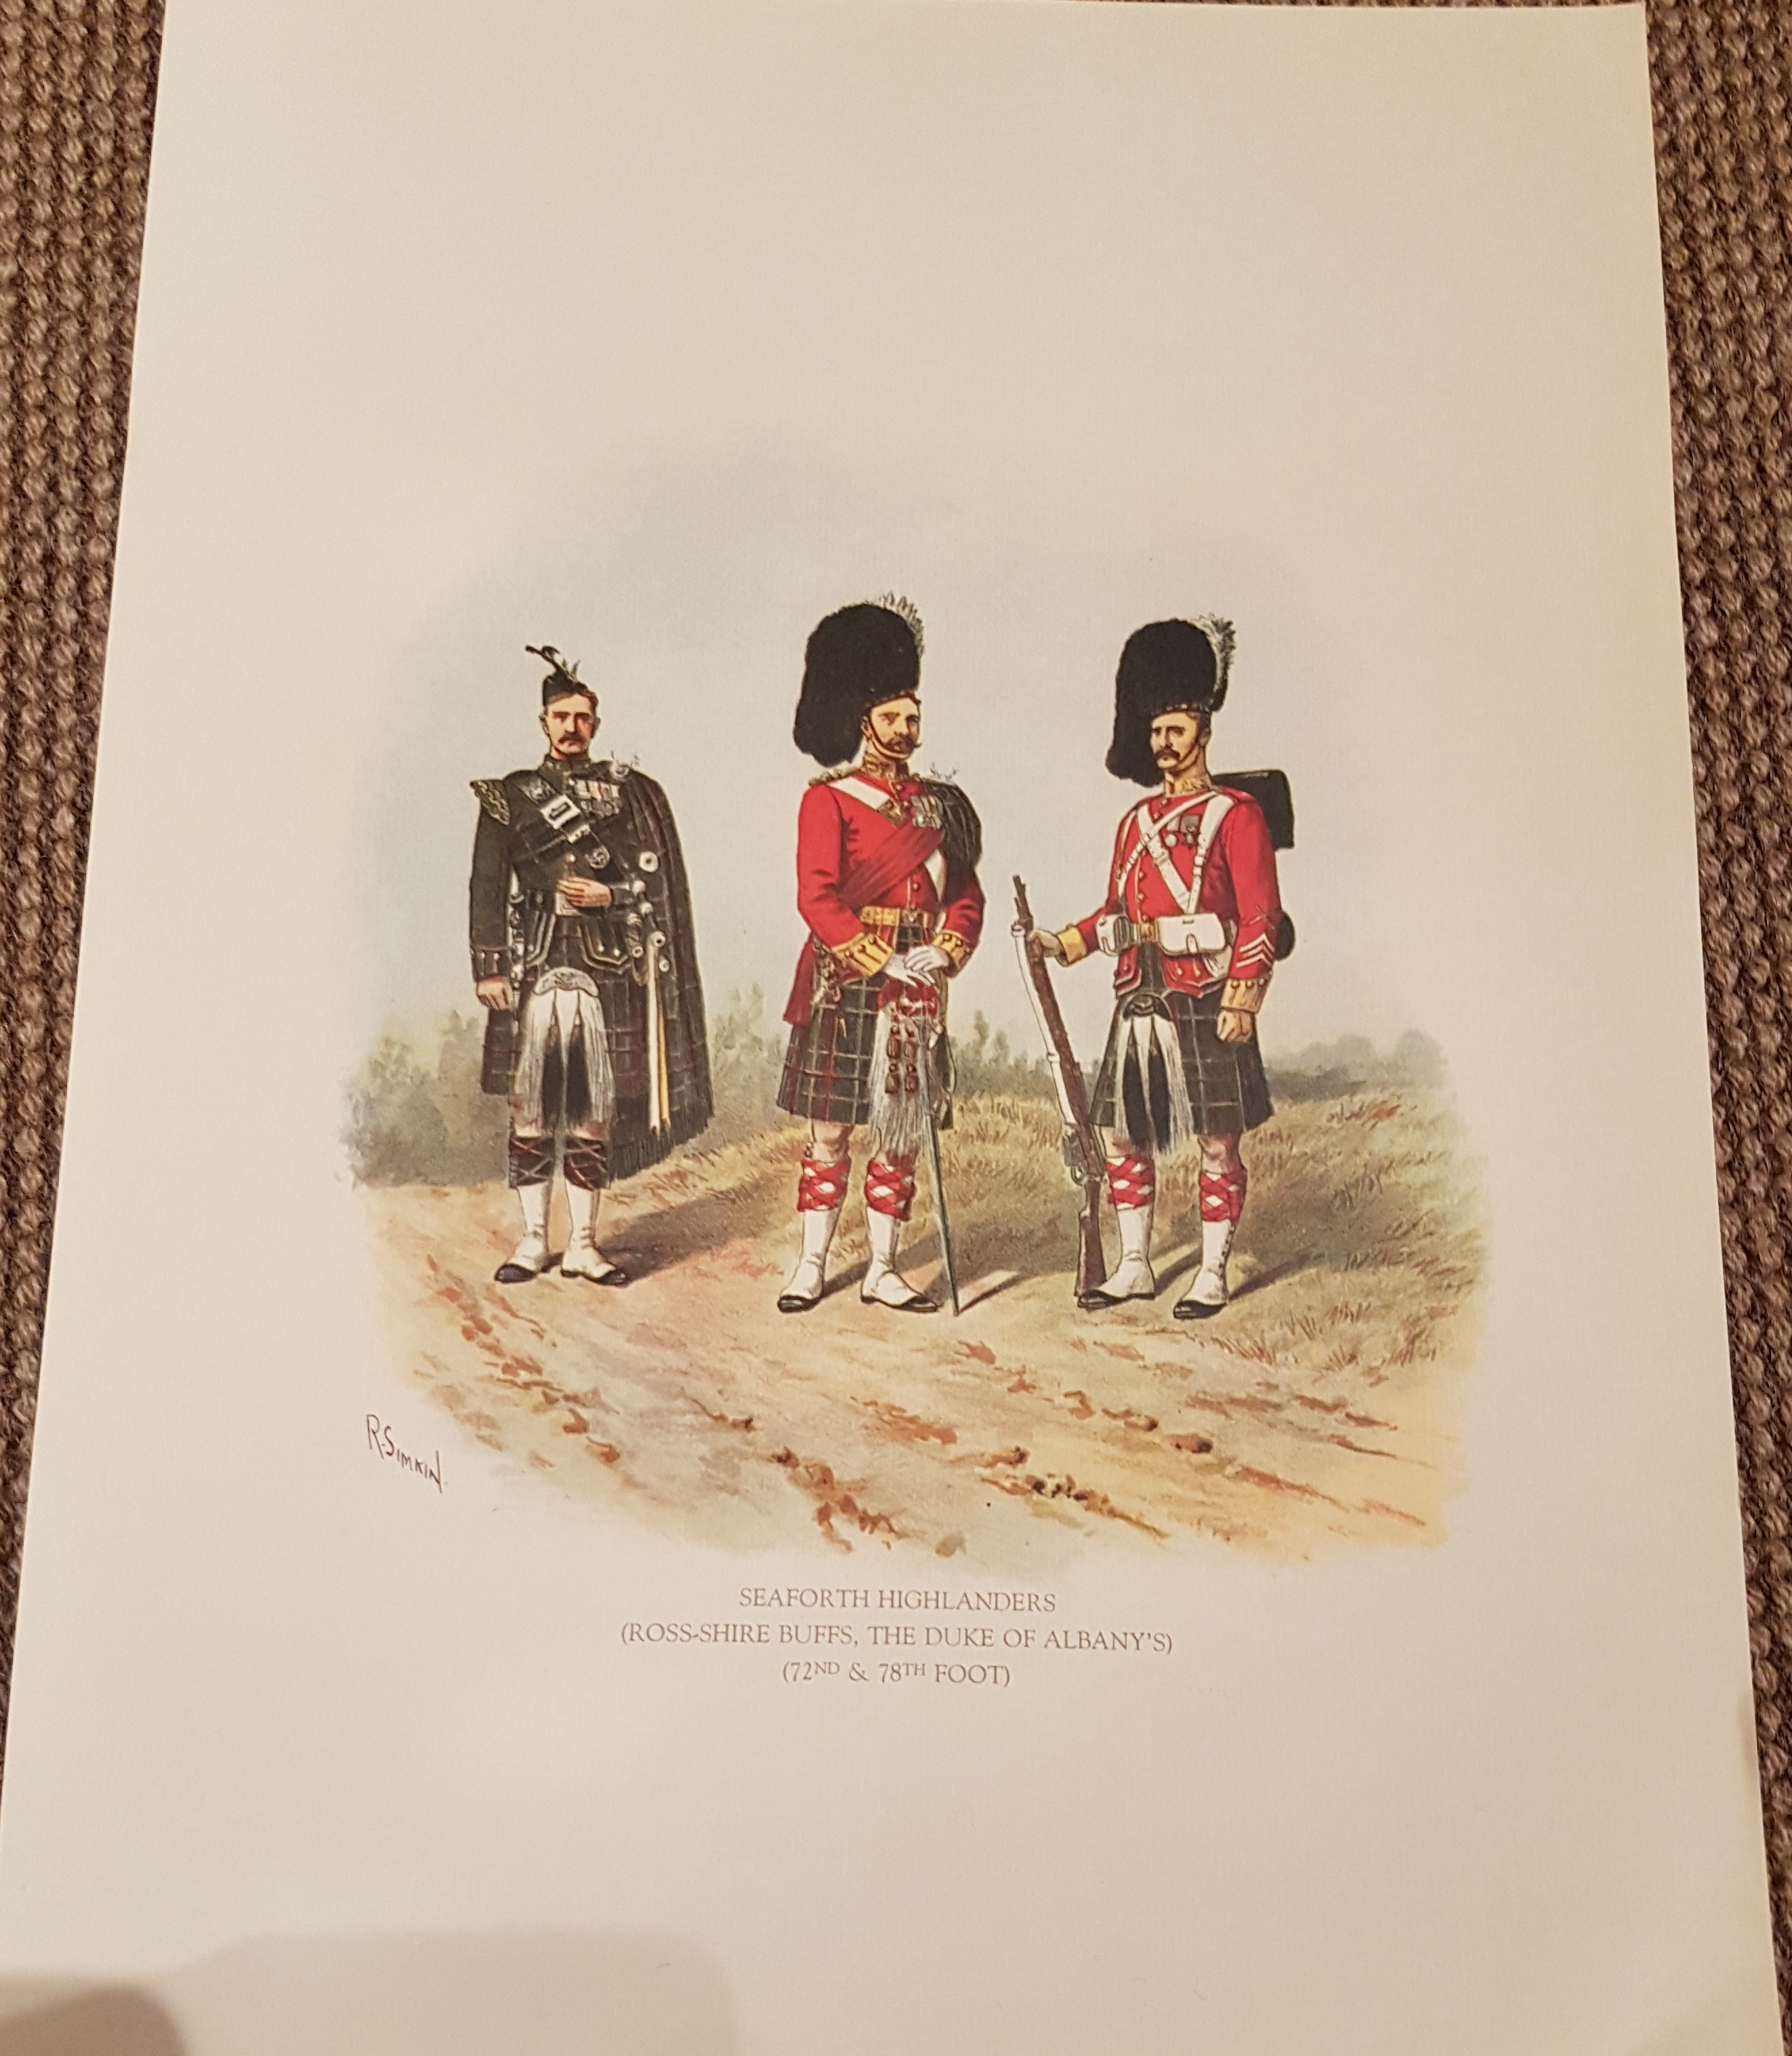 Seaforth Highlanders ( Ross-shire Buffs) poster